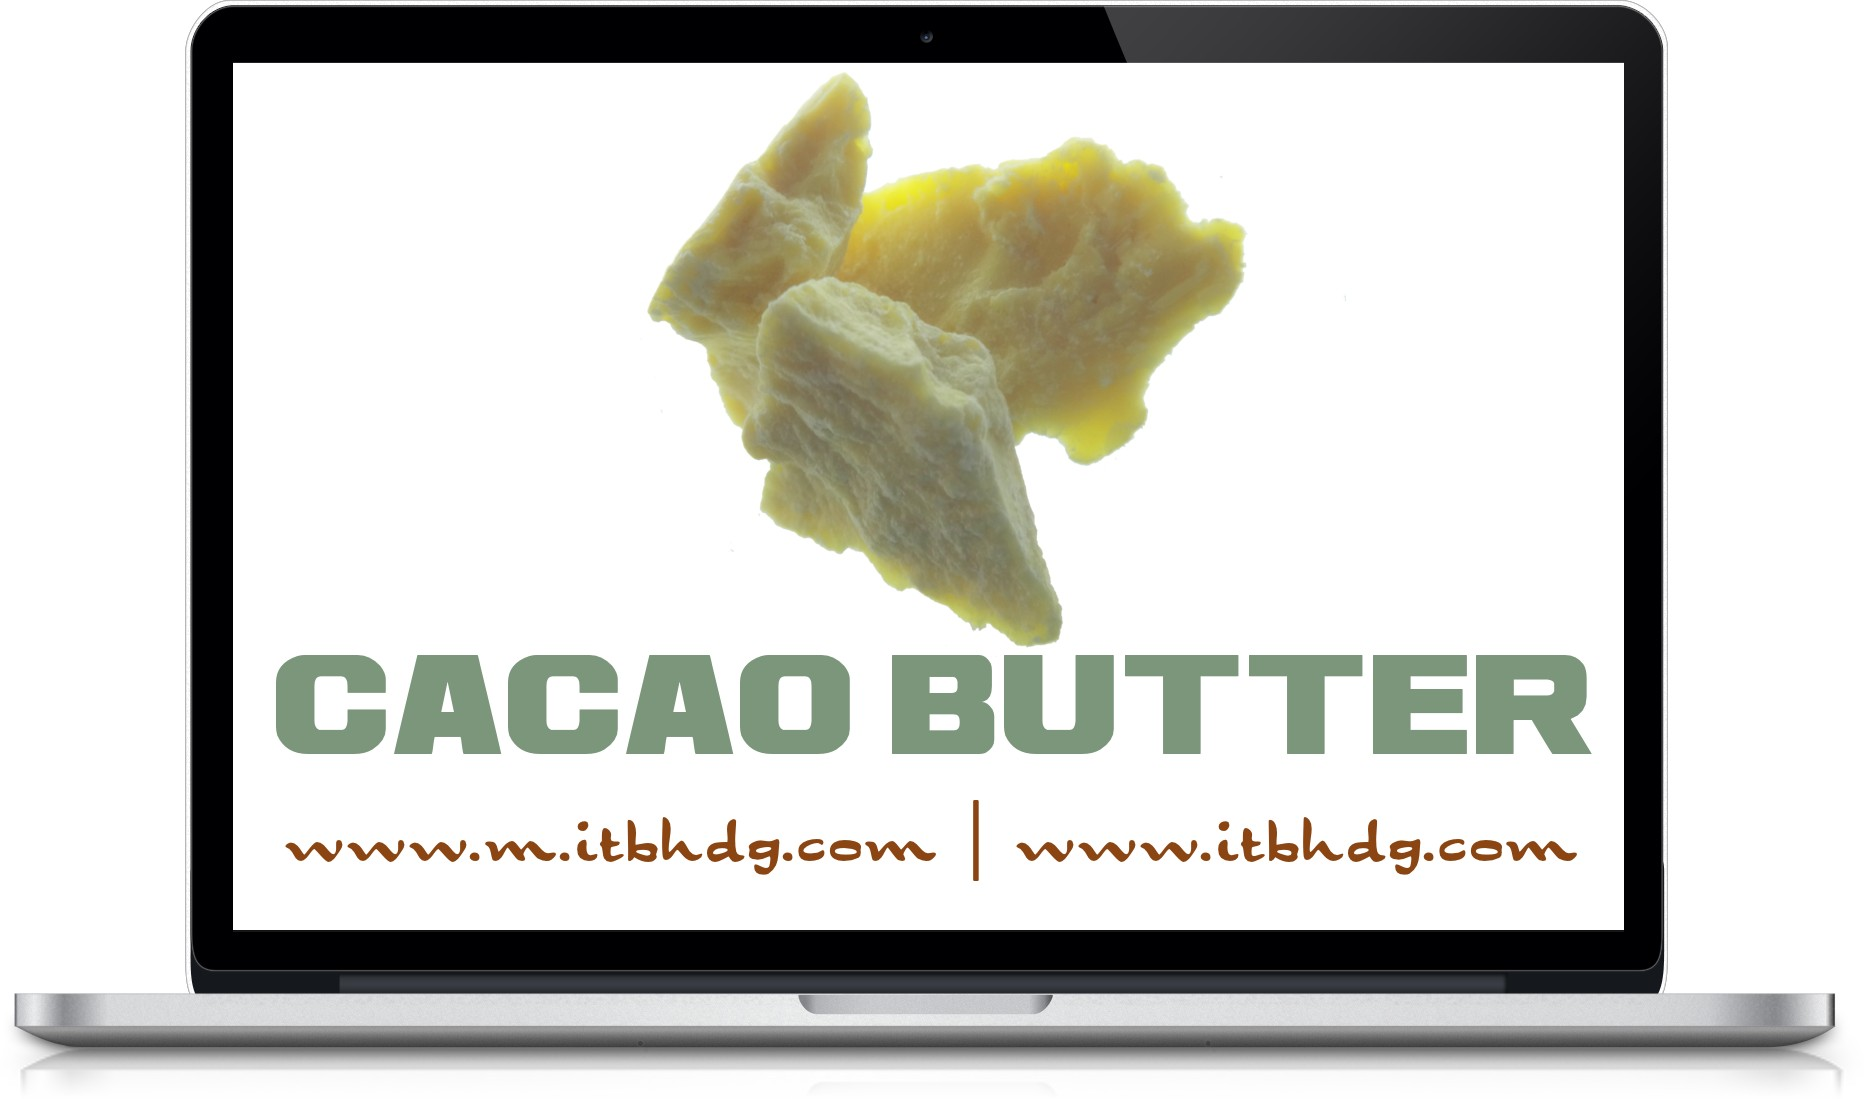 Organic cocoa butter delivered to your warehouse for only $8.98 / kg (2.2 lbs)